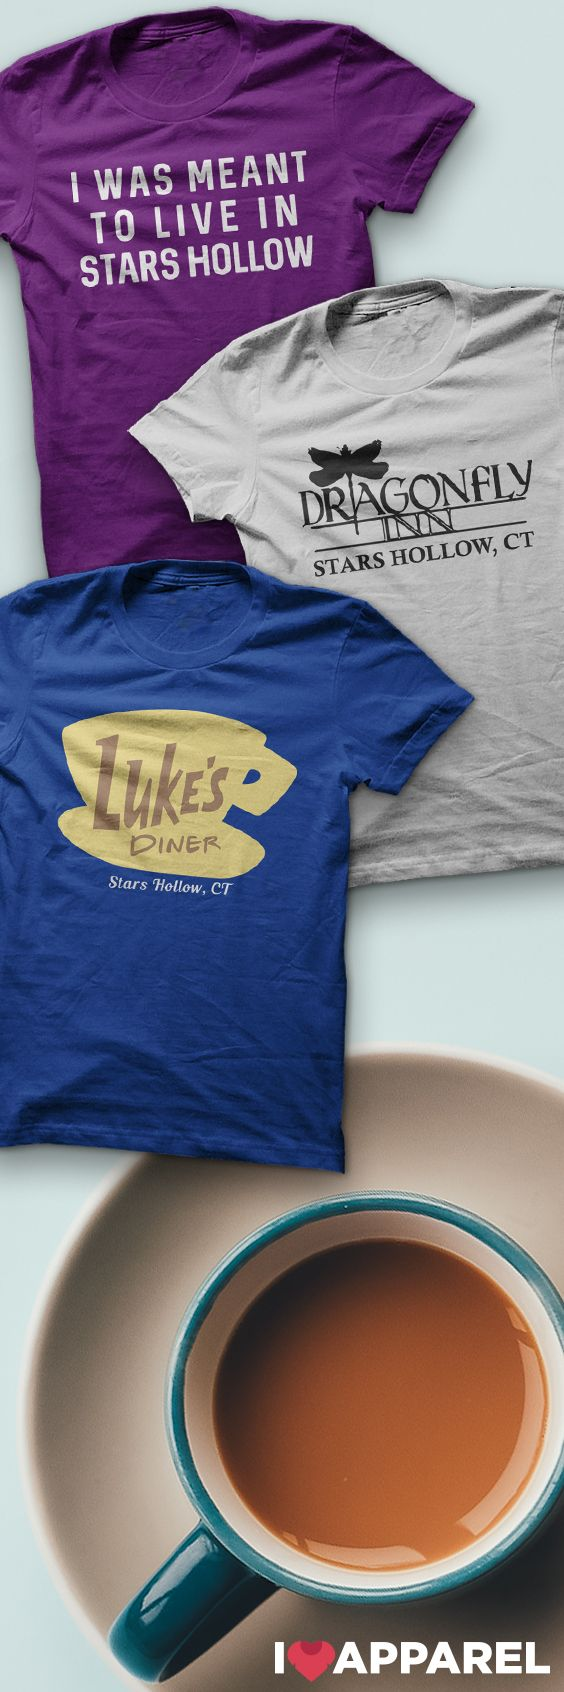 Buy Any 2 Items And Get FREE US Shipping. Check out our Luke's Diner, Dragonfly Inn and other Stars Hollow shirts.